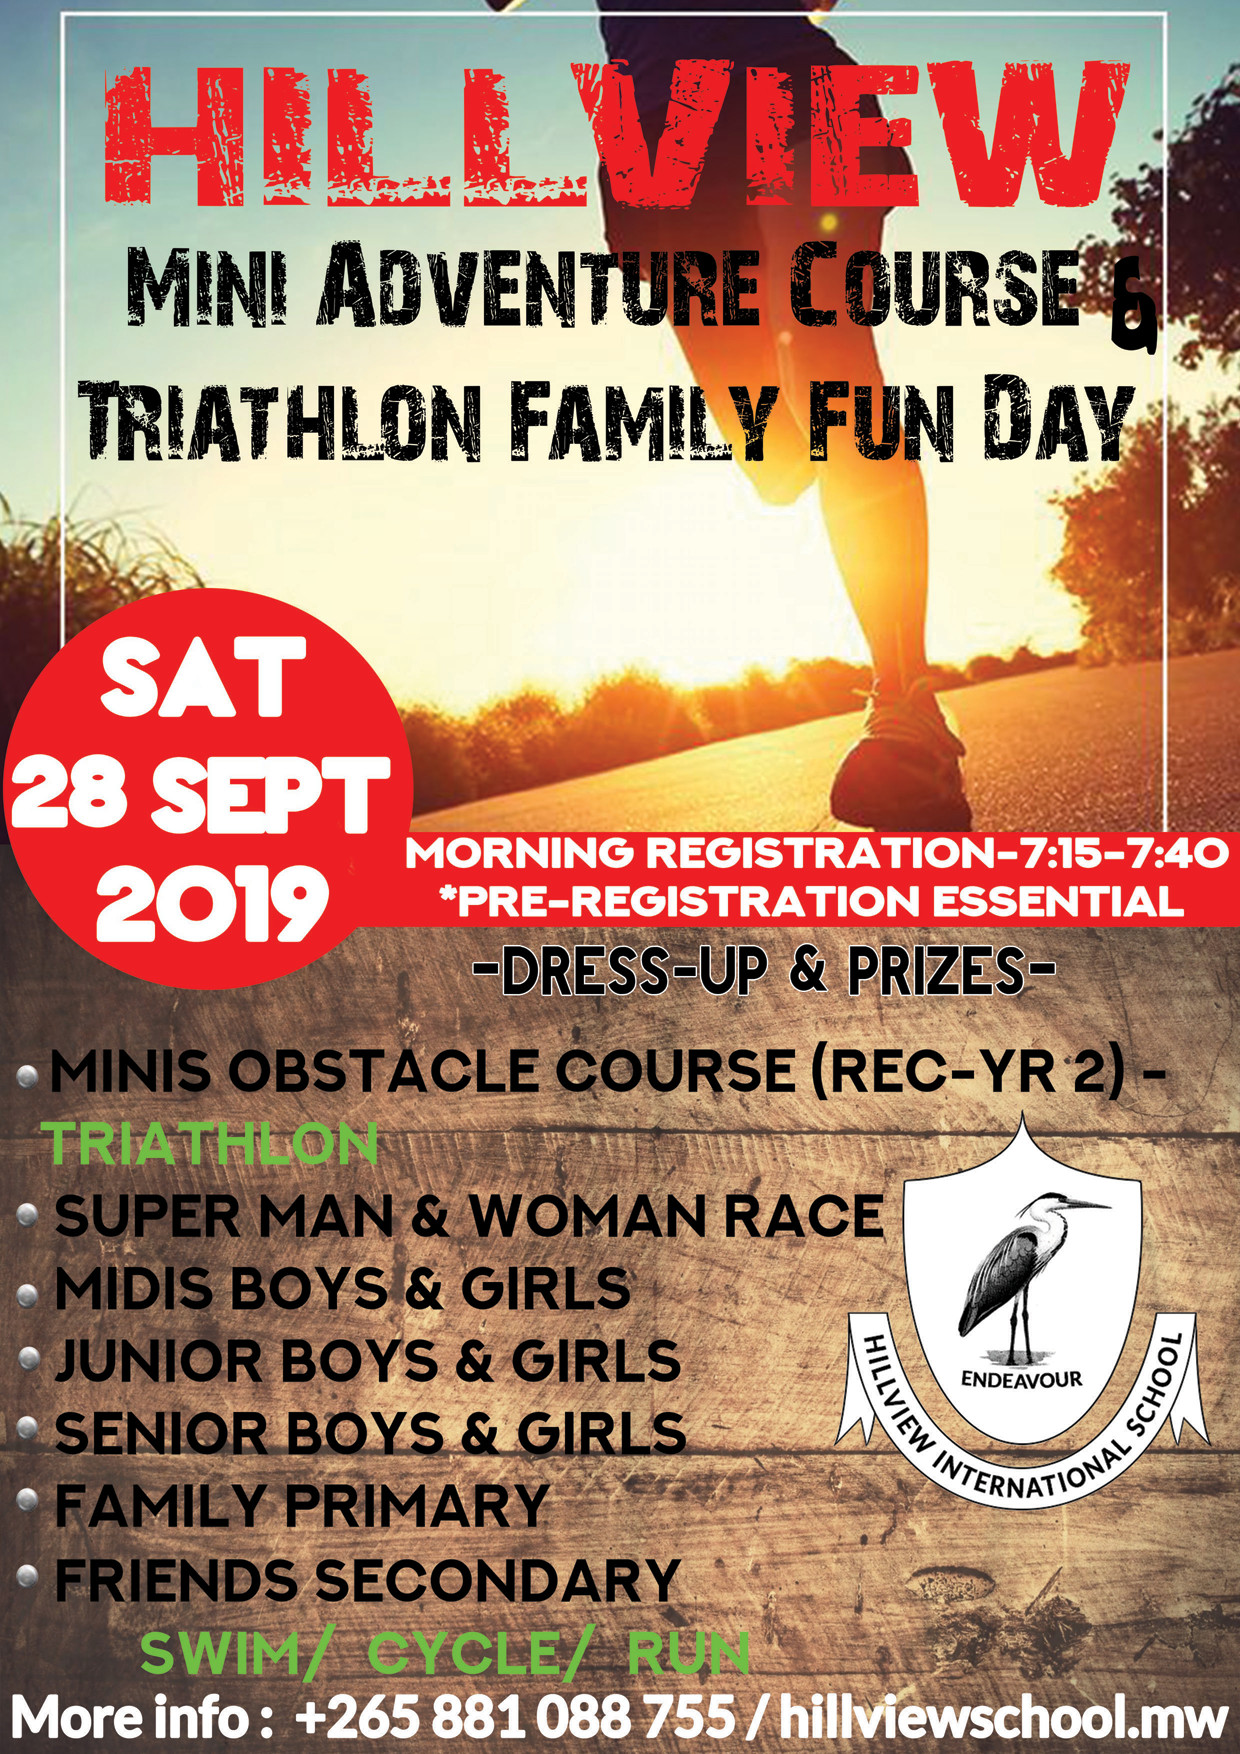 Hillview Mini Adventure Course and Triathlon Family Fun Day